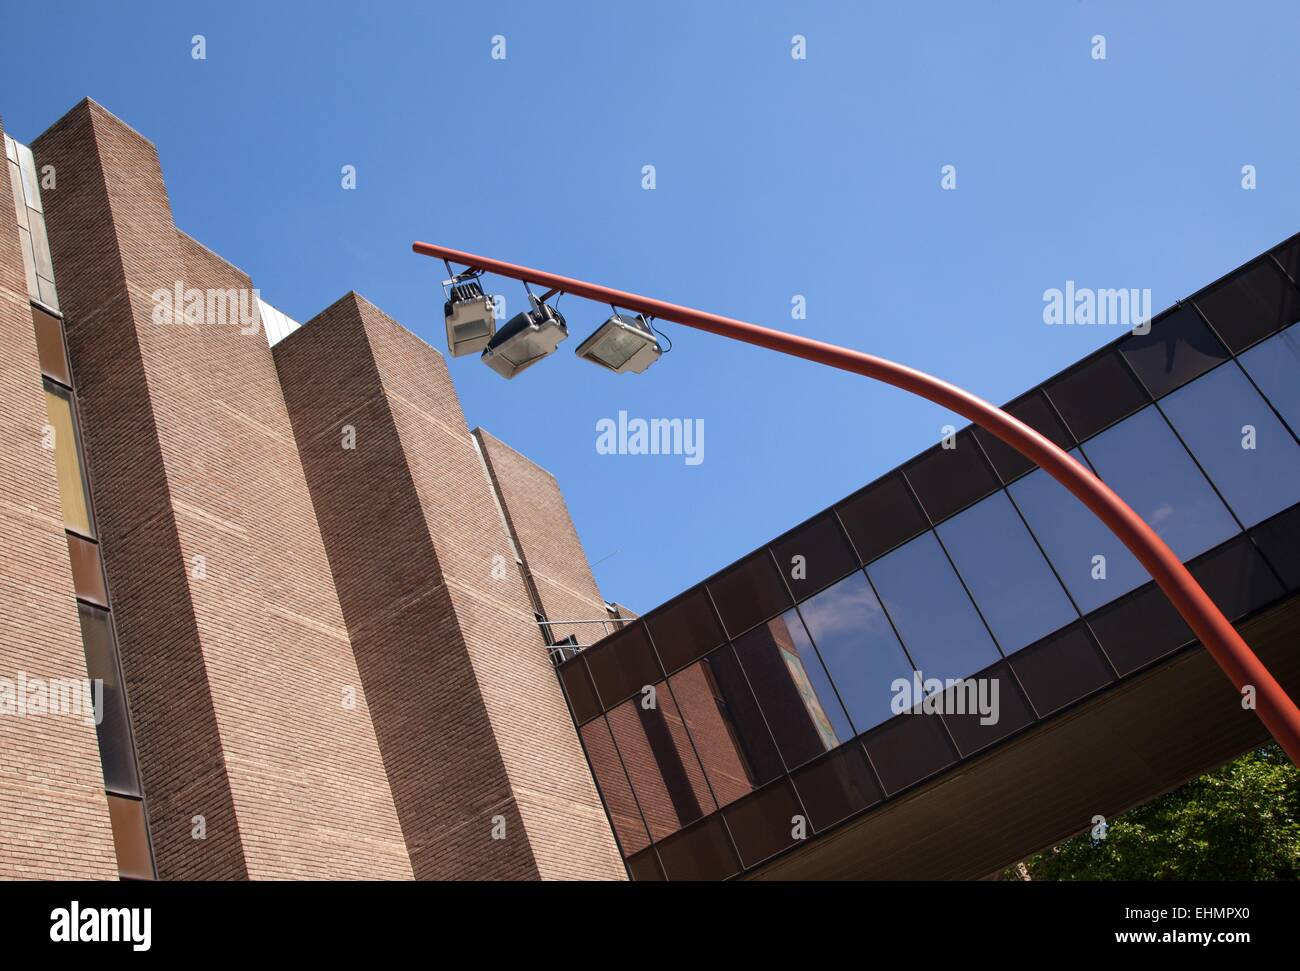 Walsall Council offices, Walsall, West Midlands - Stock Image